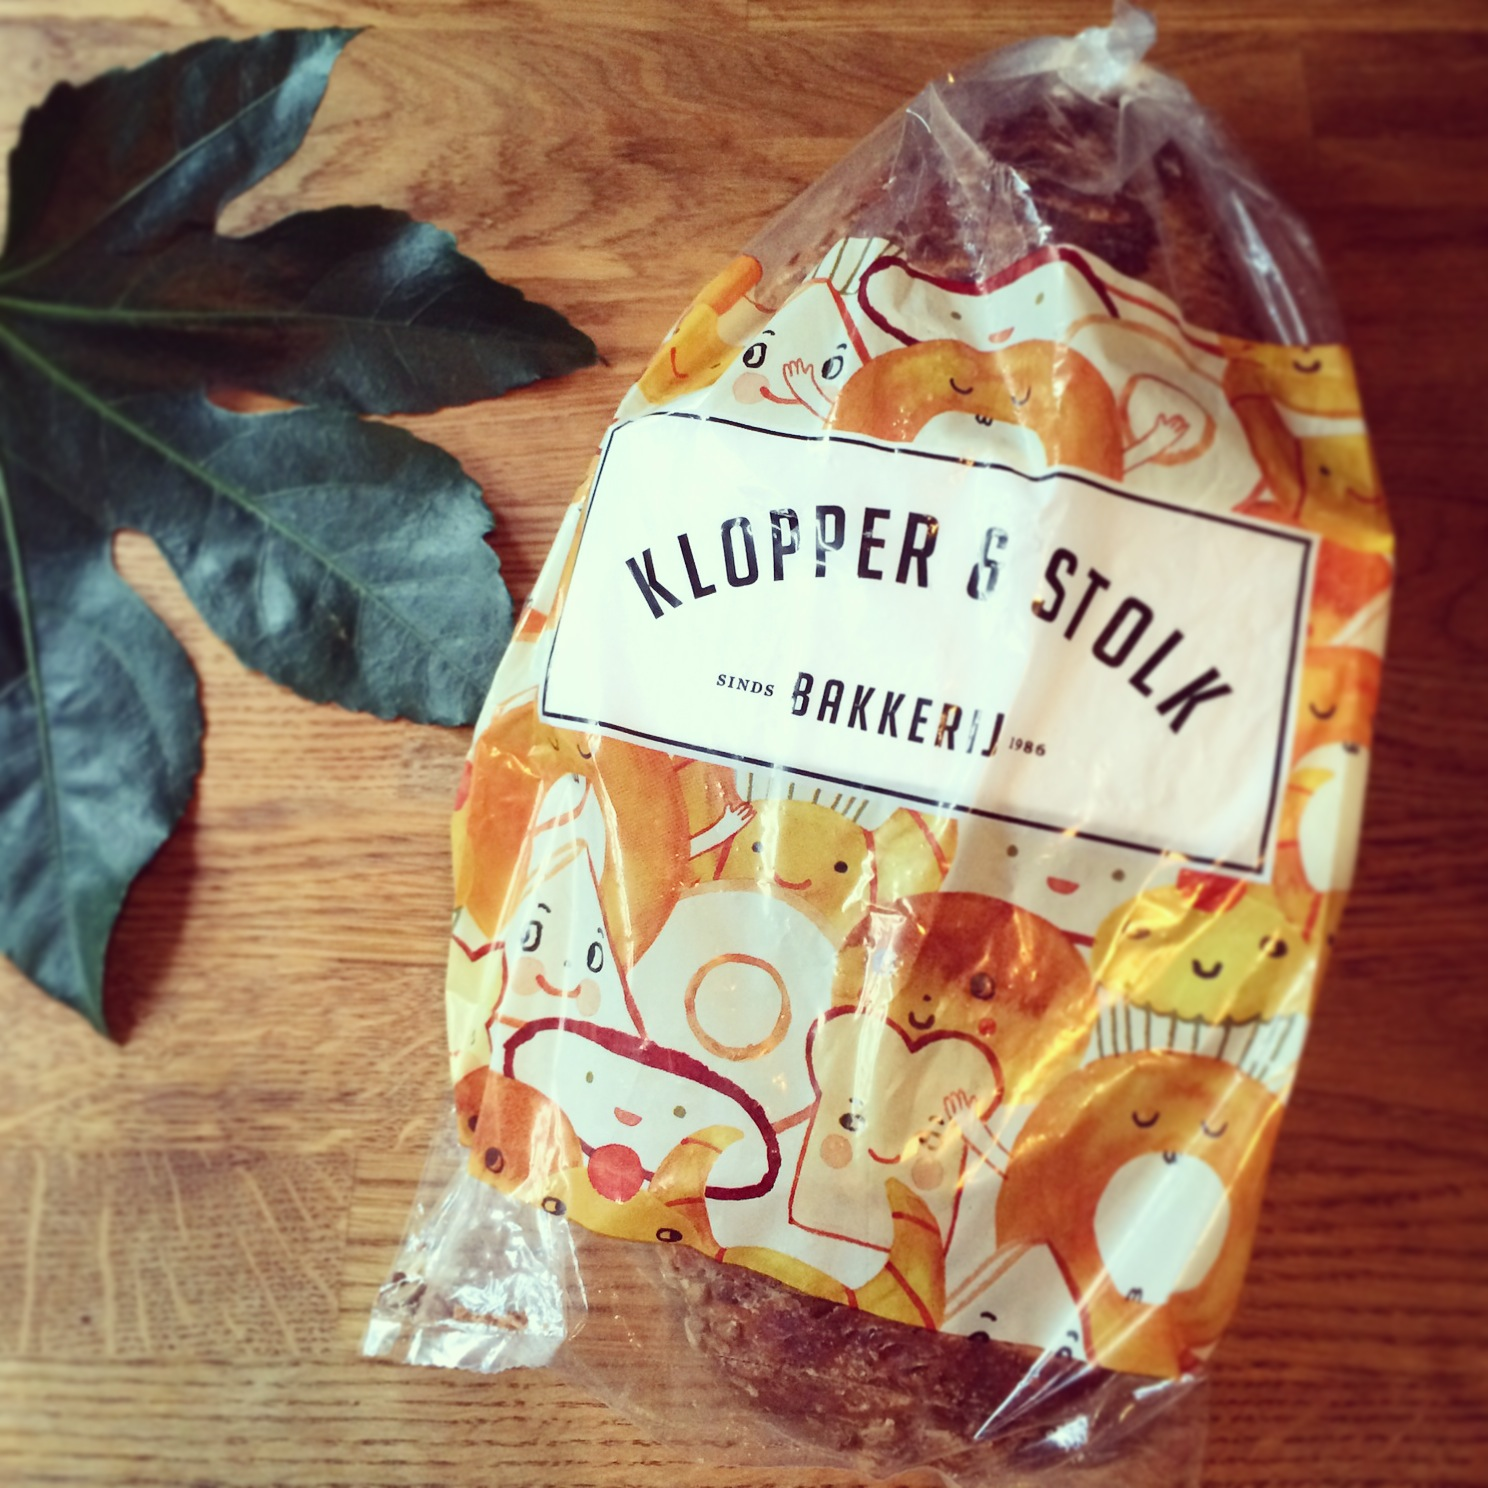 KLOPPER&STOLK packaging1